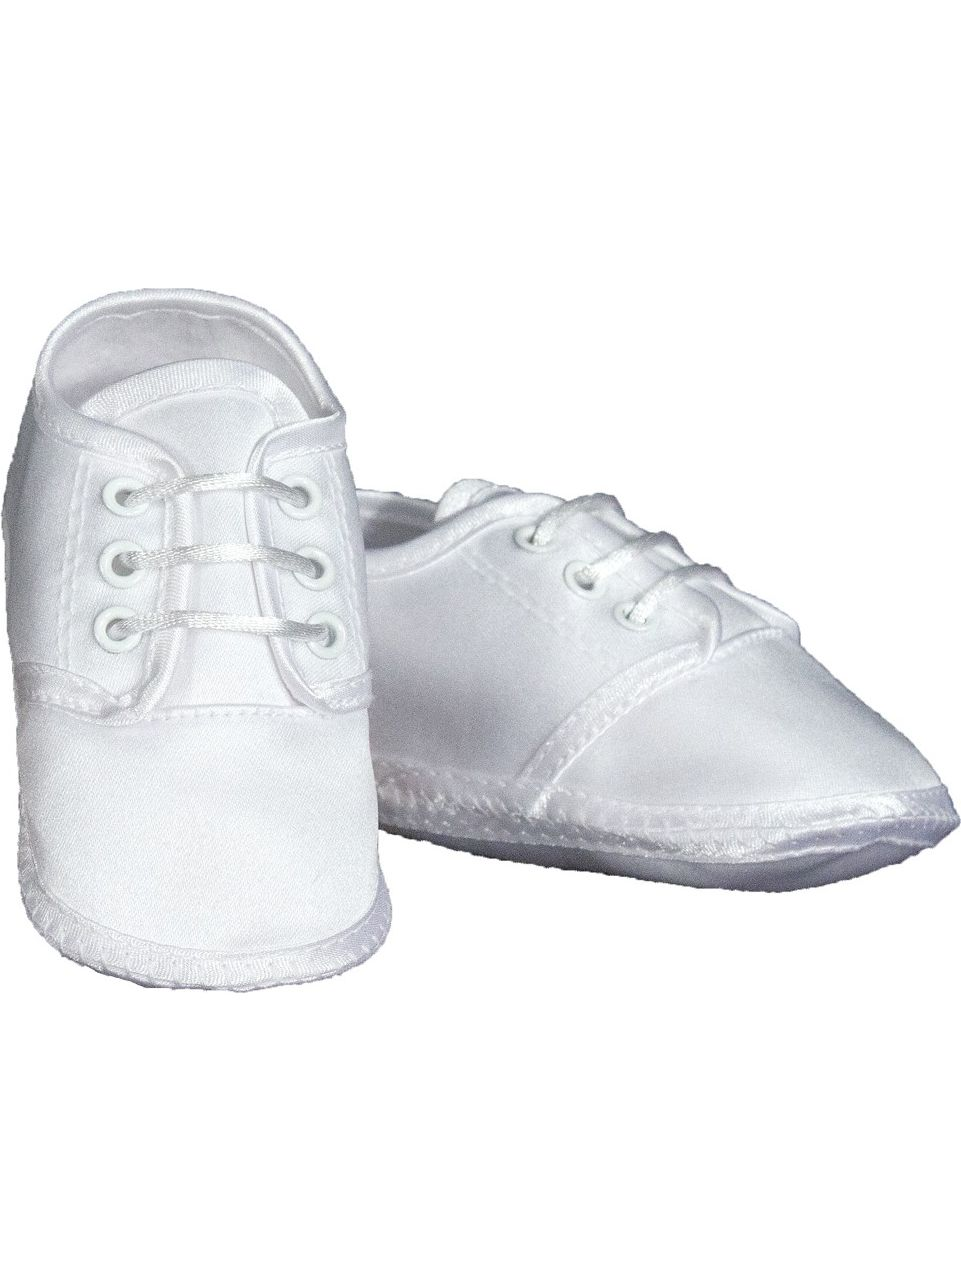 Baby Boys White Satin Classic Oxford Christening Shoes